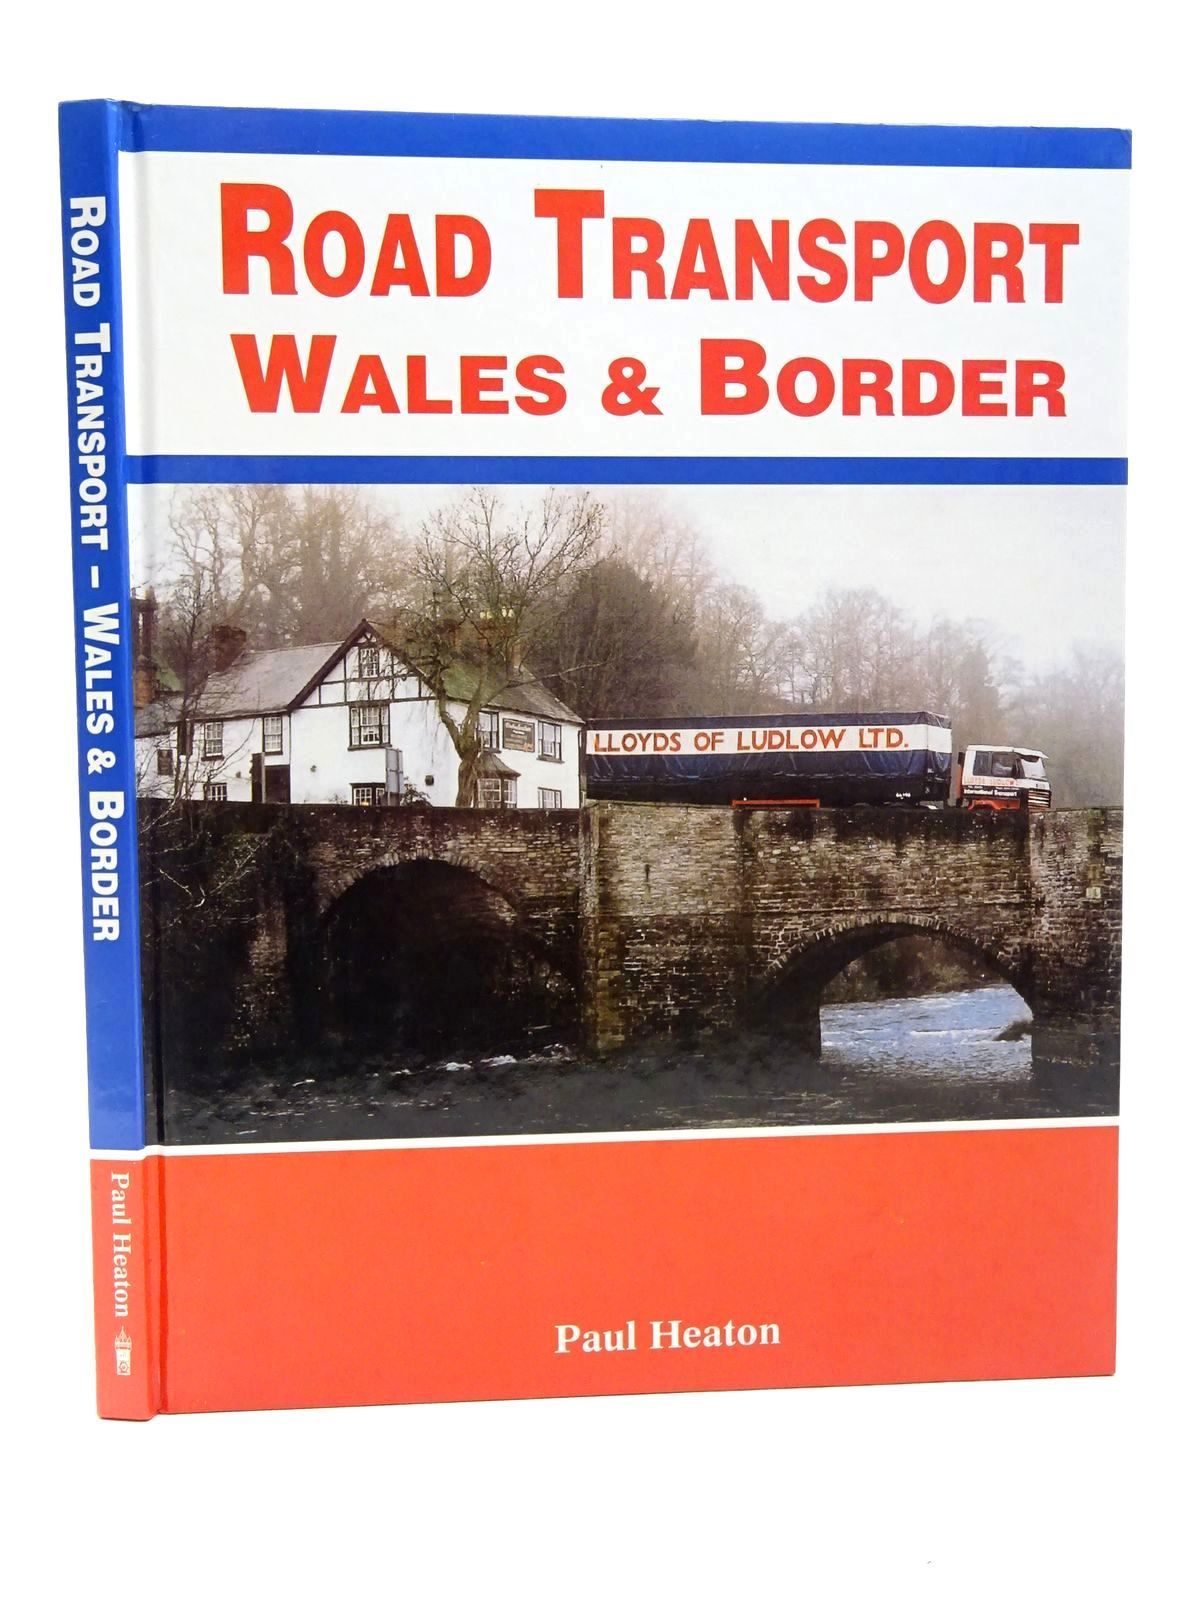 Photo of ROAD TRANSPORT WALES & BORDER written by Heaton, Paul published by P.M. Heaton Publishing (STOCK CODE: 1815617)  for sale by Stella & Rose's Books